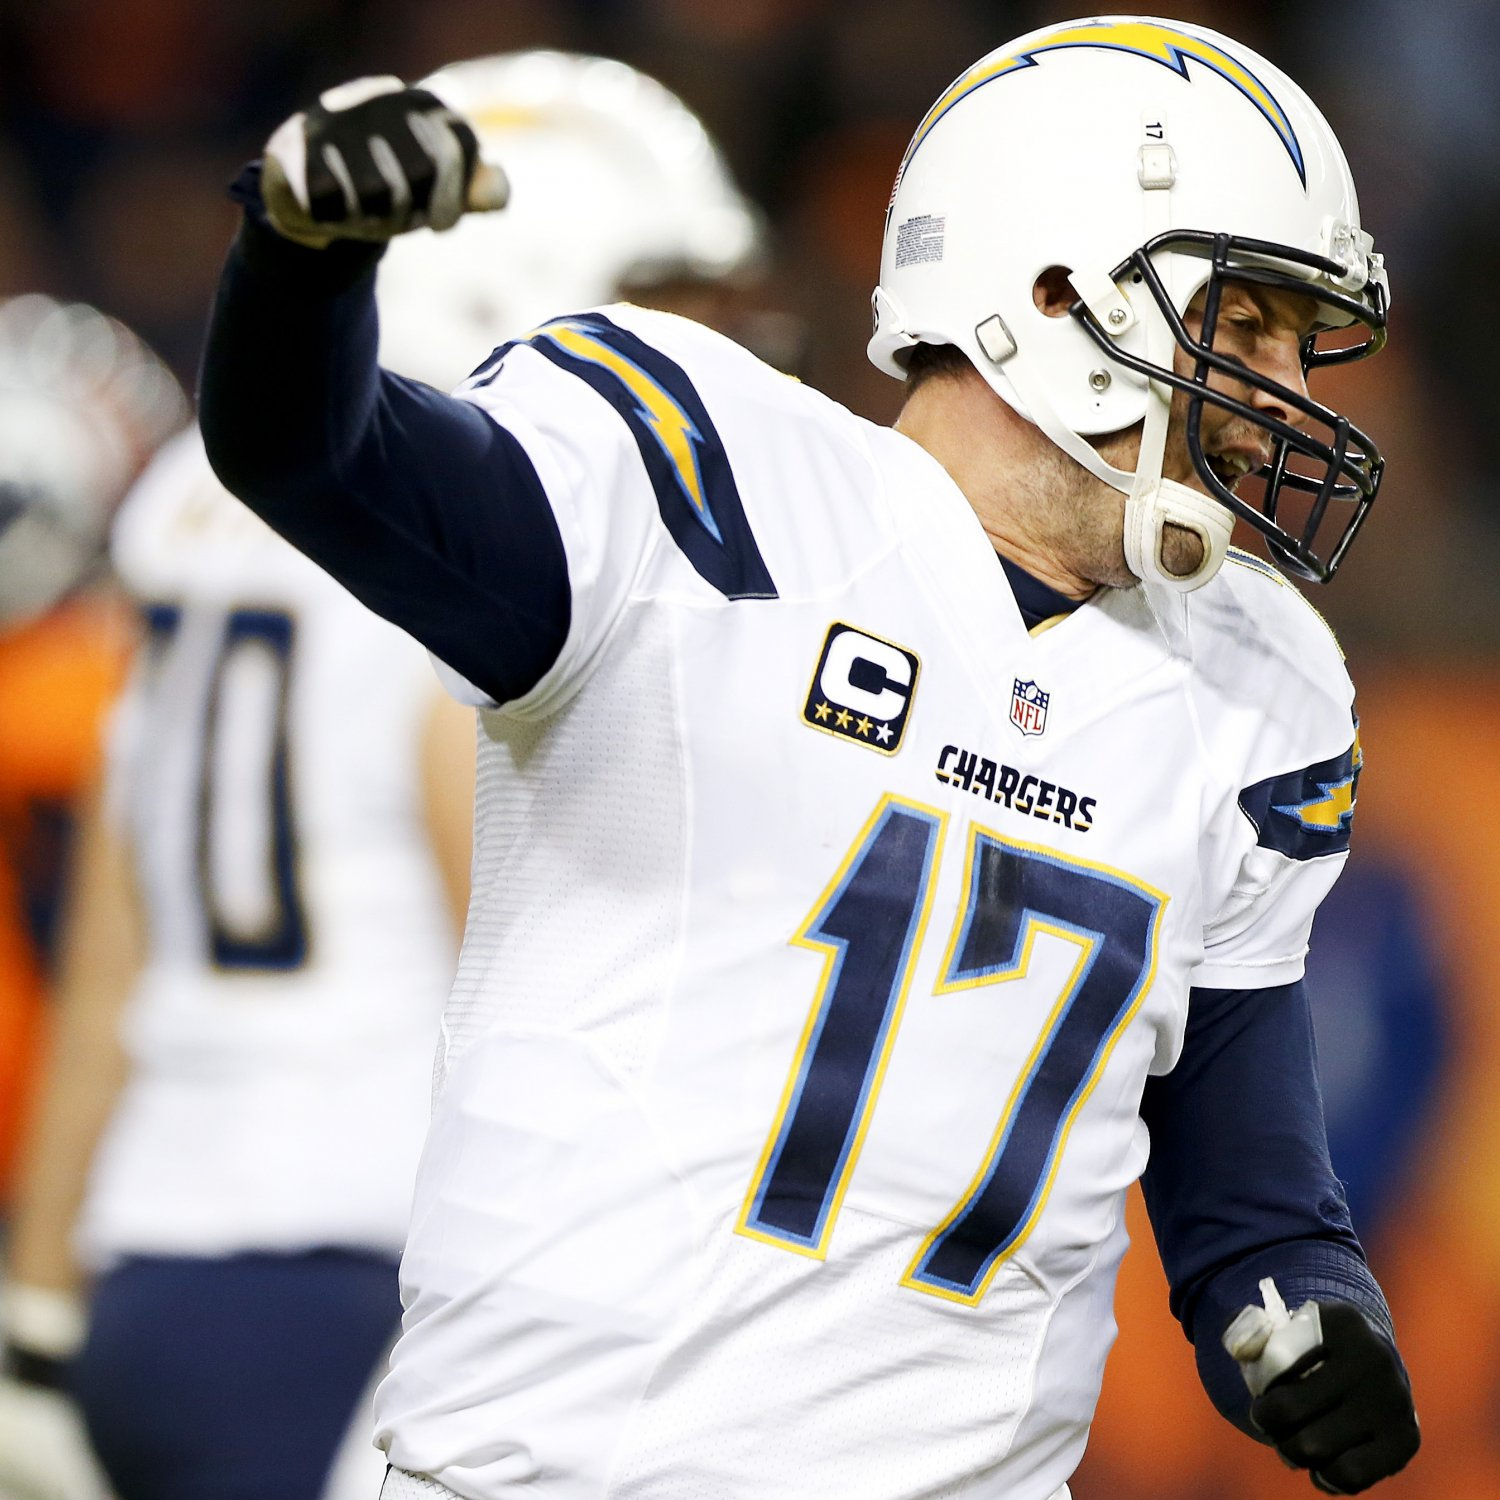 Chargers New Stadium: San Diego Chargers' New Stadium: News, Rumors, Comments On